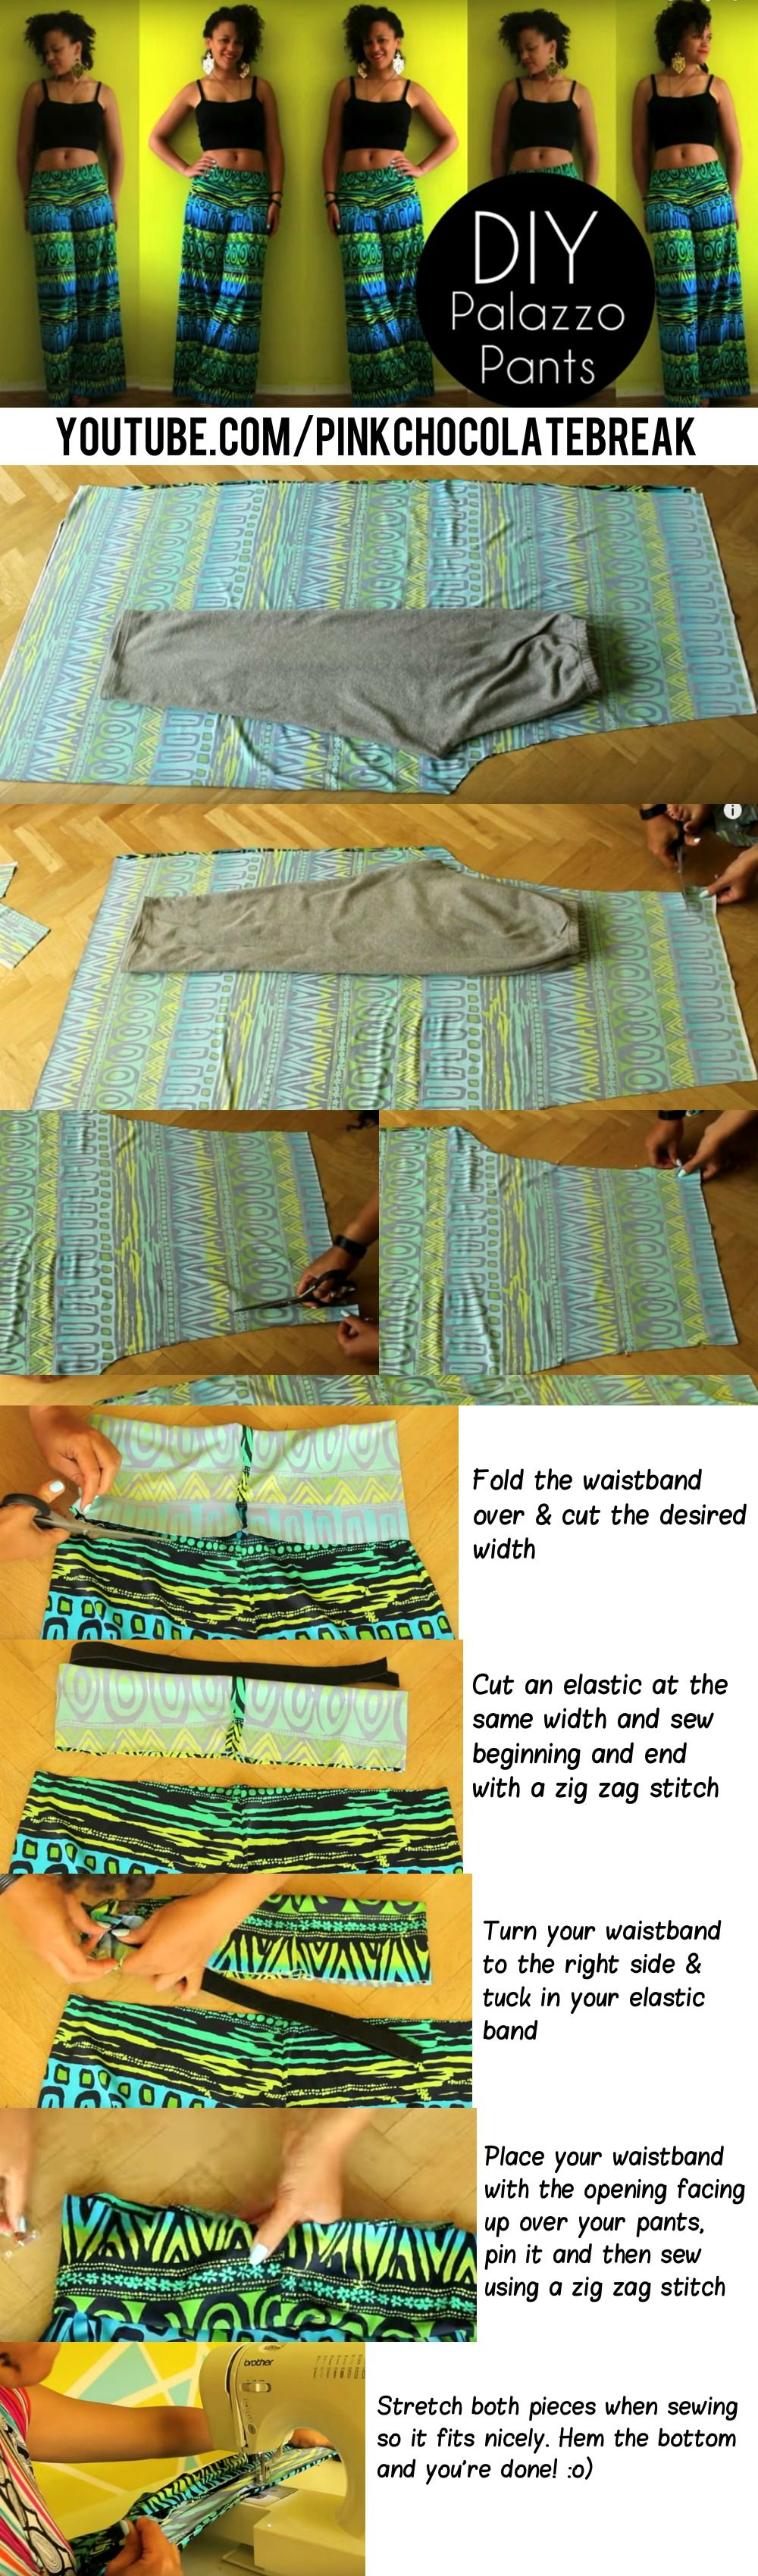 Diy Palazzo Pants In 20min Sewing Tutorials And Tips Sse